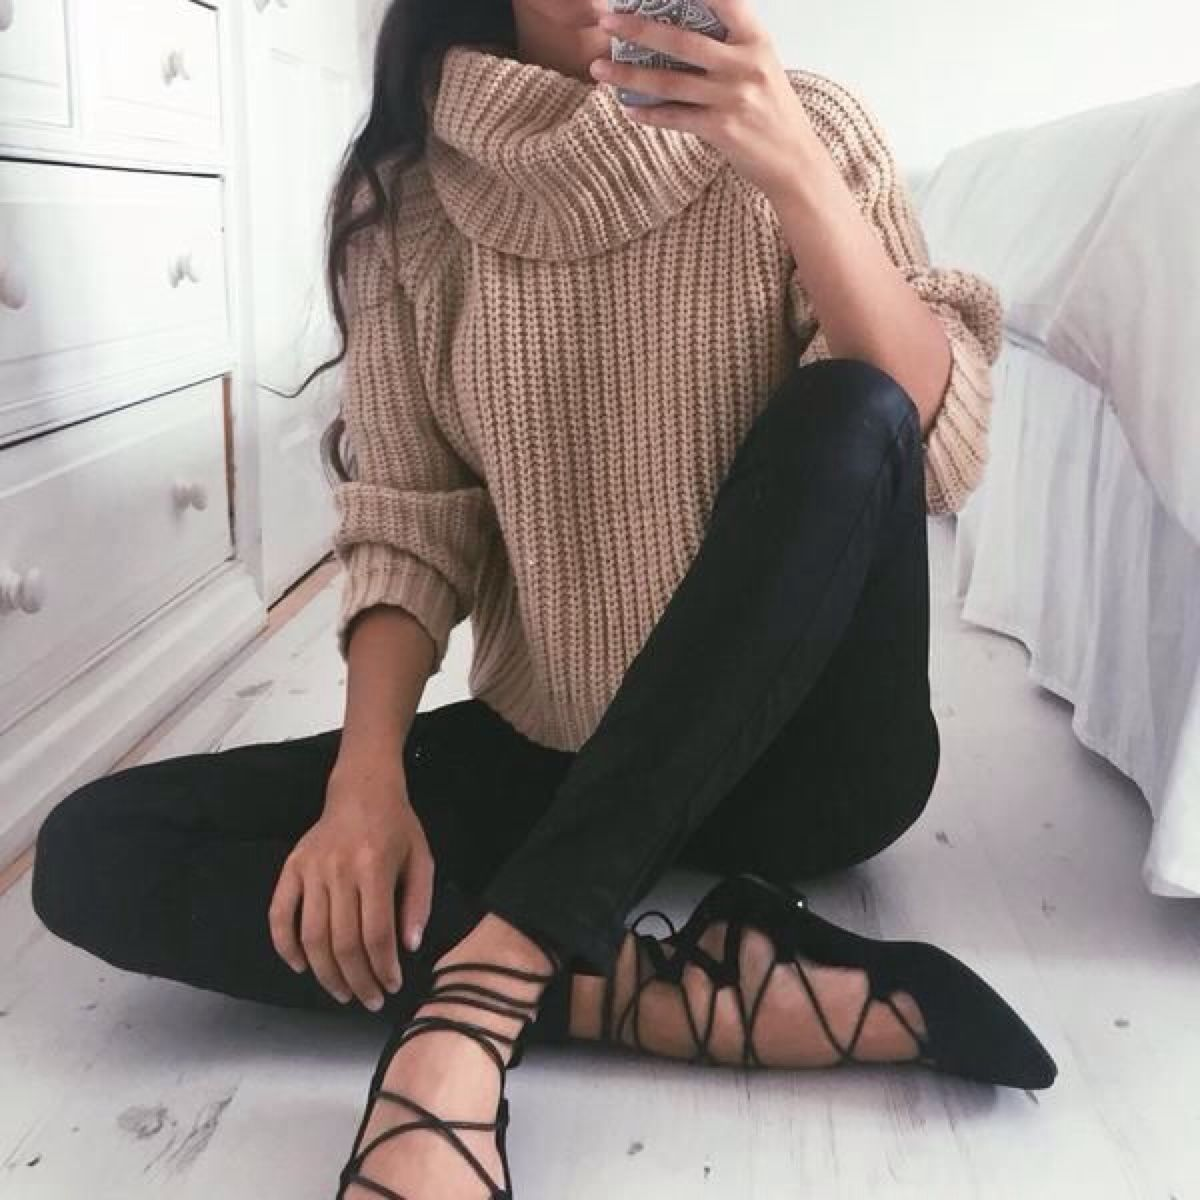 Crochet Sweater With Black Jeans And Ballet Flats Pictures Photos